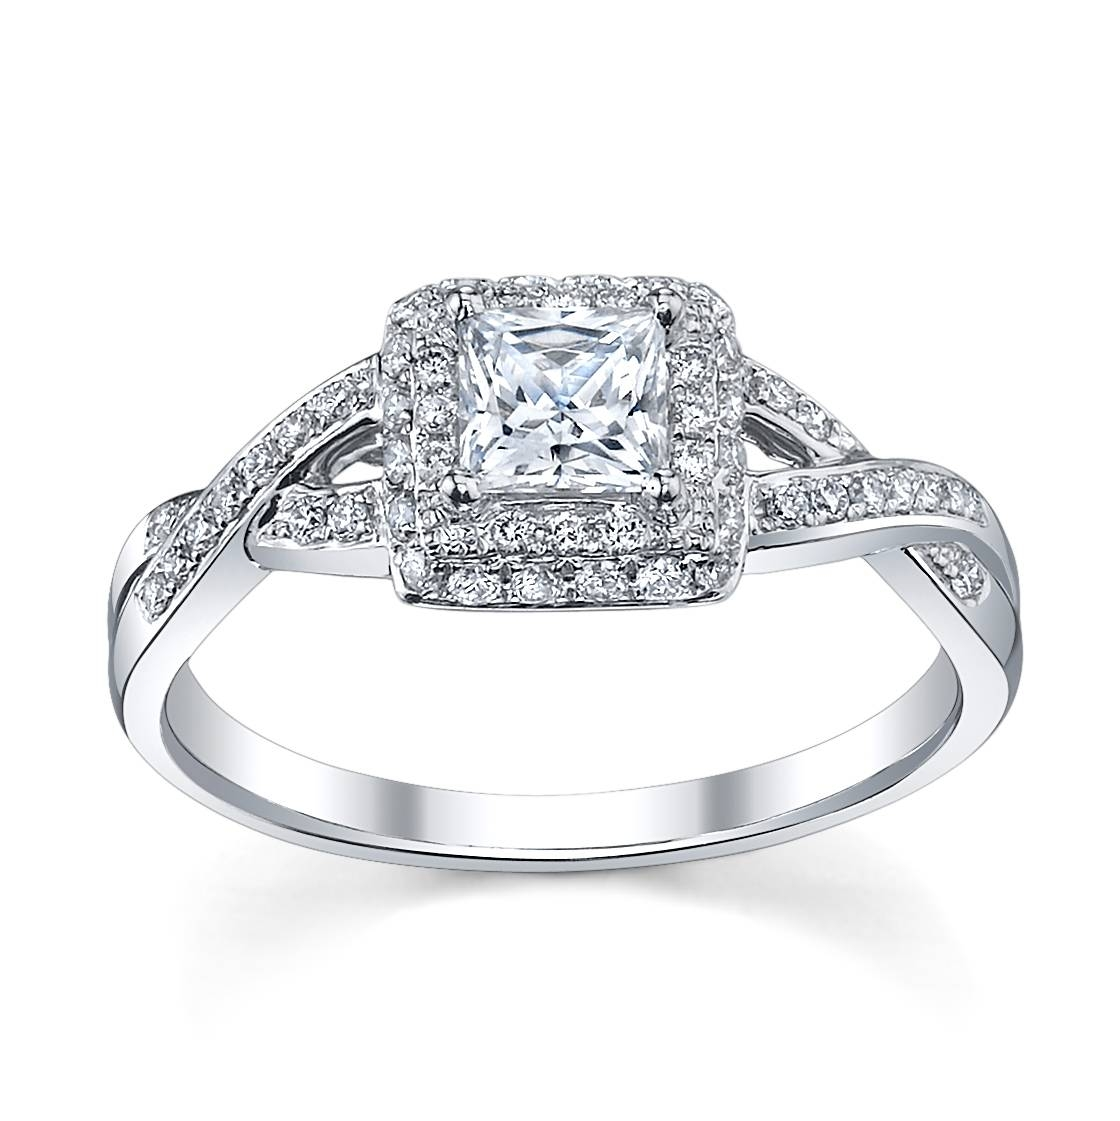 Engagement Rings : Wedding Rings Princess Cut White Gold Awesome With 2018 Princess Cut Engagement Rings And Wedding Bands (View 8 of 15)